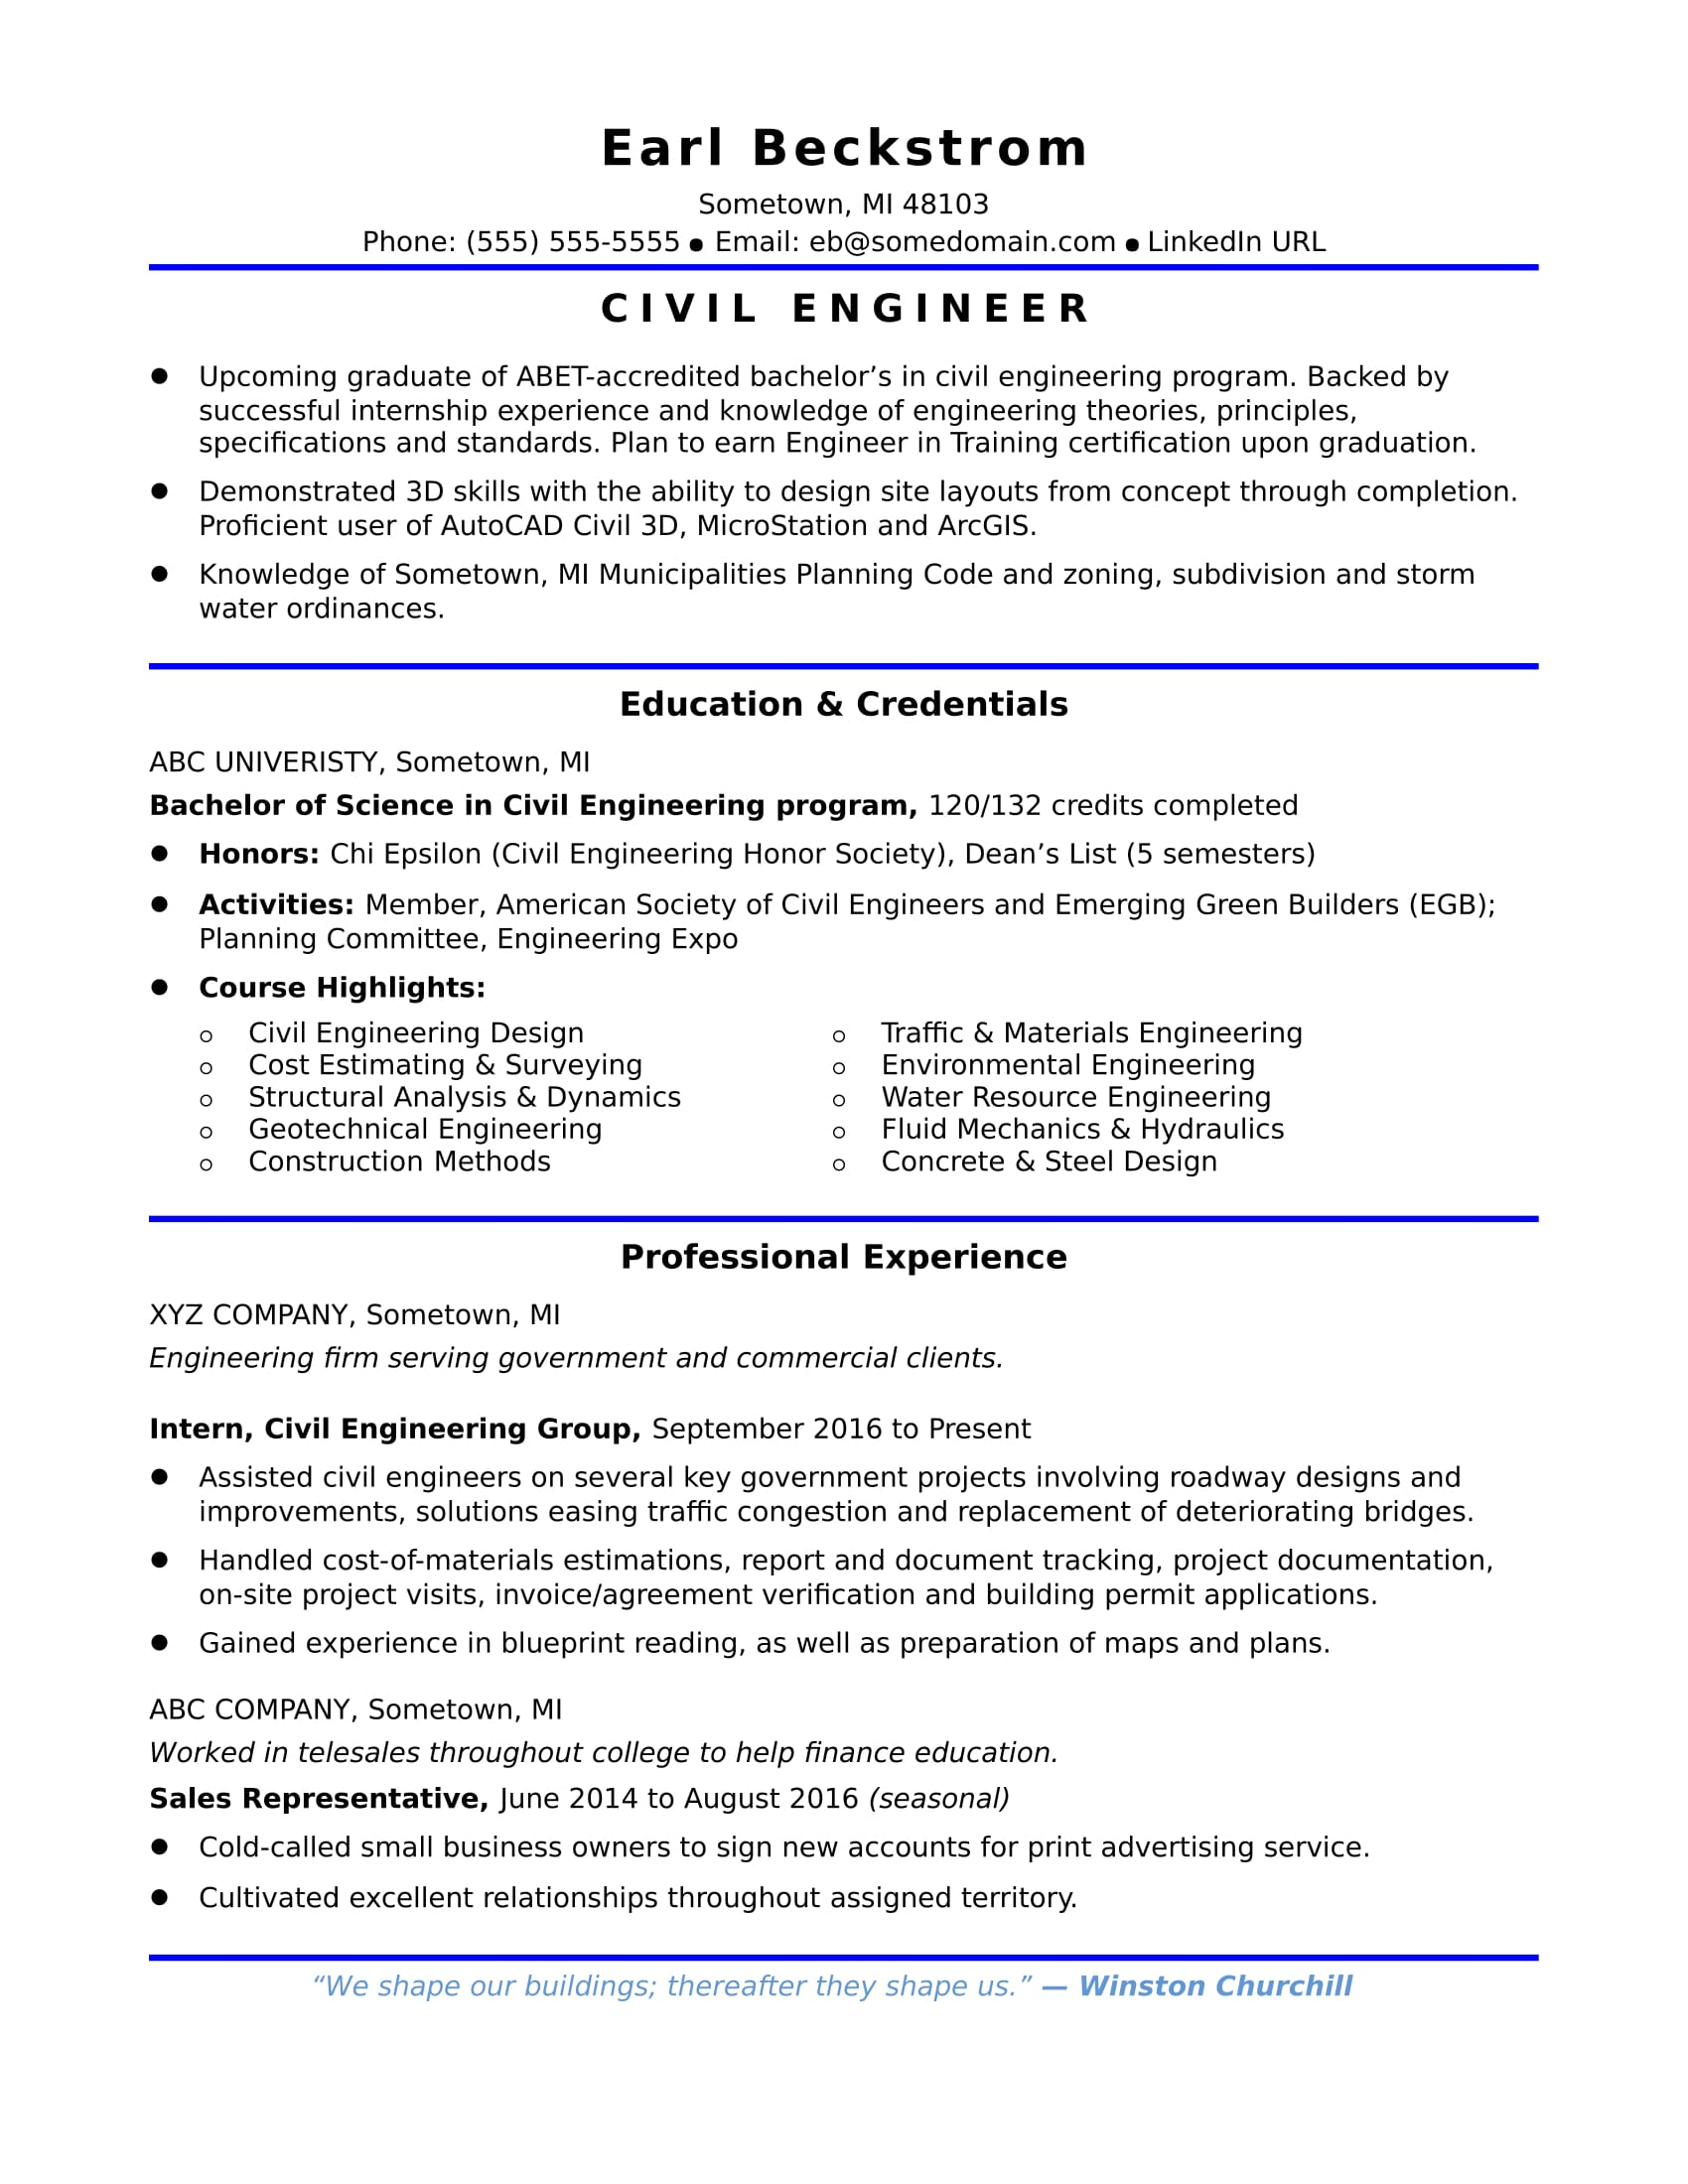 sample resume for an entry level civil engineer monster summary excellent career Resume Civil Engineer Resume Summary